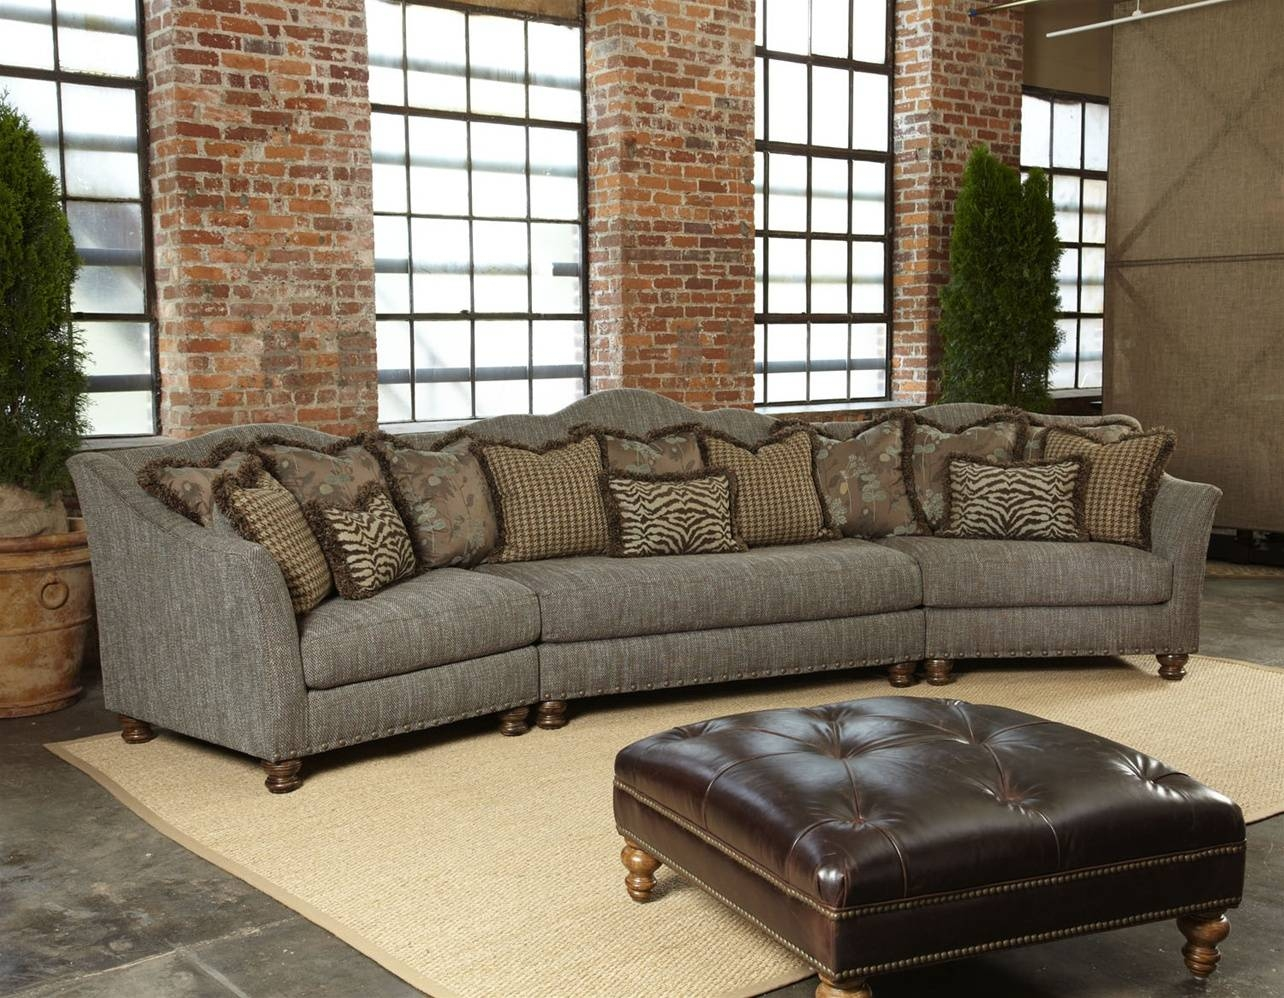 Beautiful Sectional Sofas Tampa 47 For Diana Dark Brown Leather within Diana Dark Brown Leather Sectional Sofa Set (Image 8 of 30)